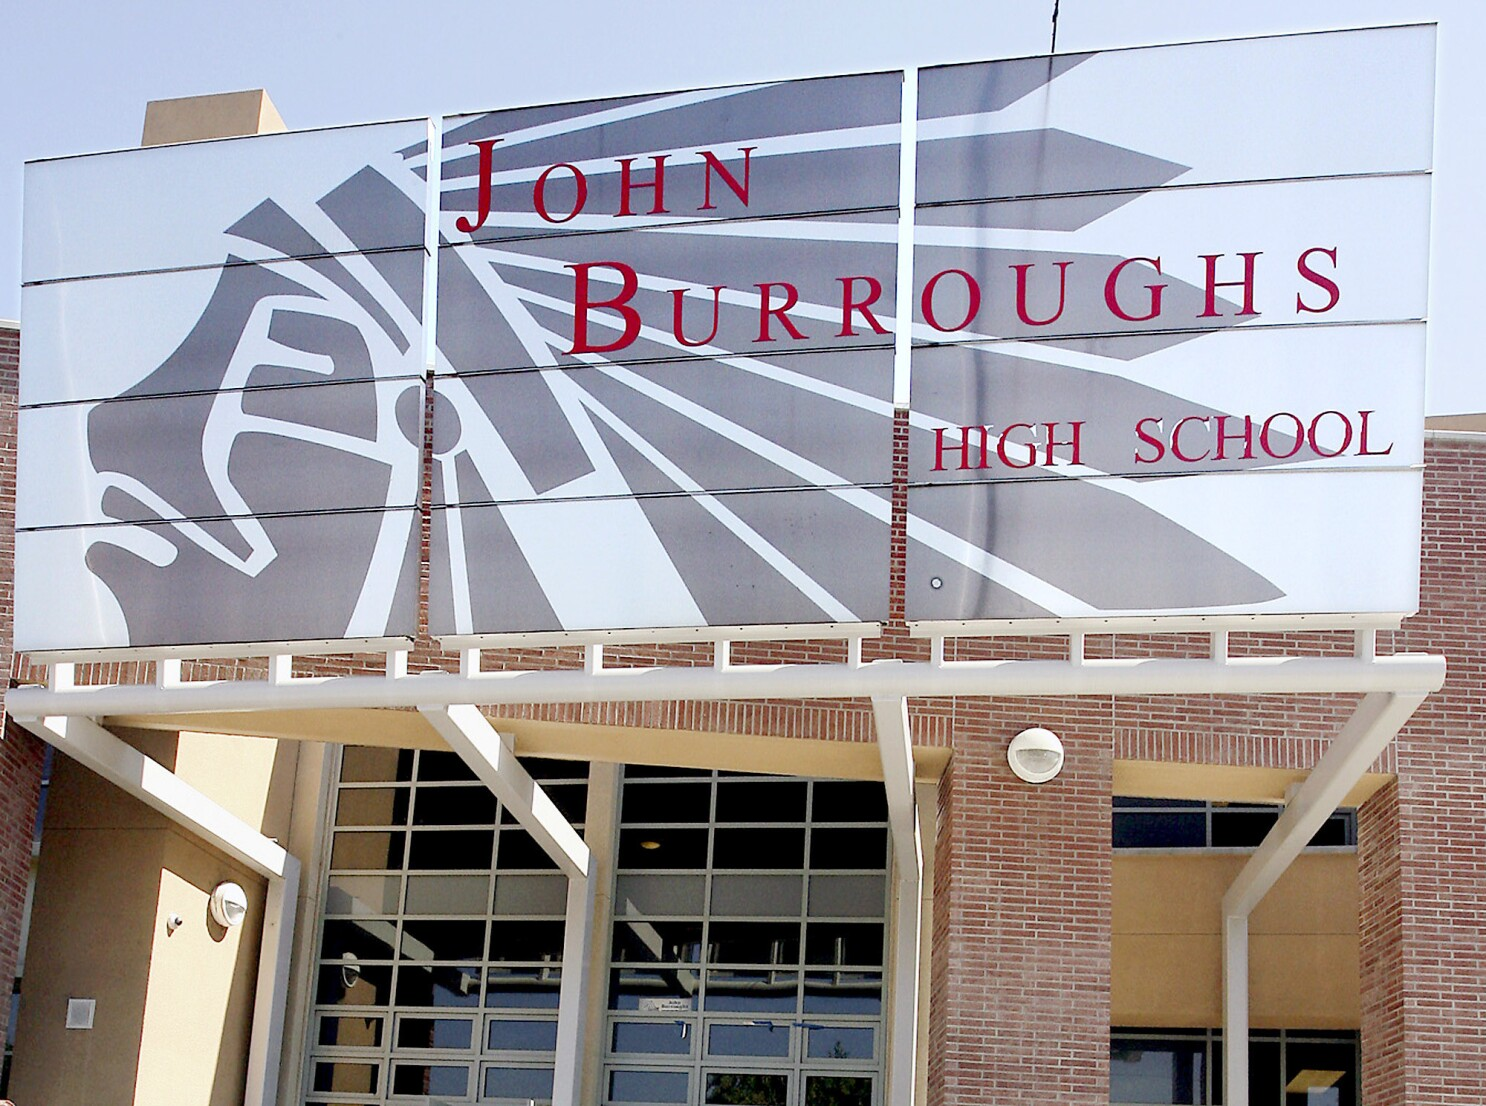 John Burroughs High targeted with fake threat, Burbank officials ...